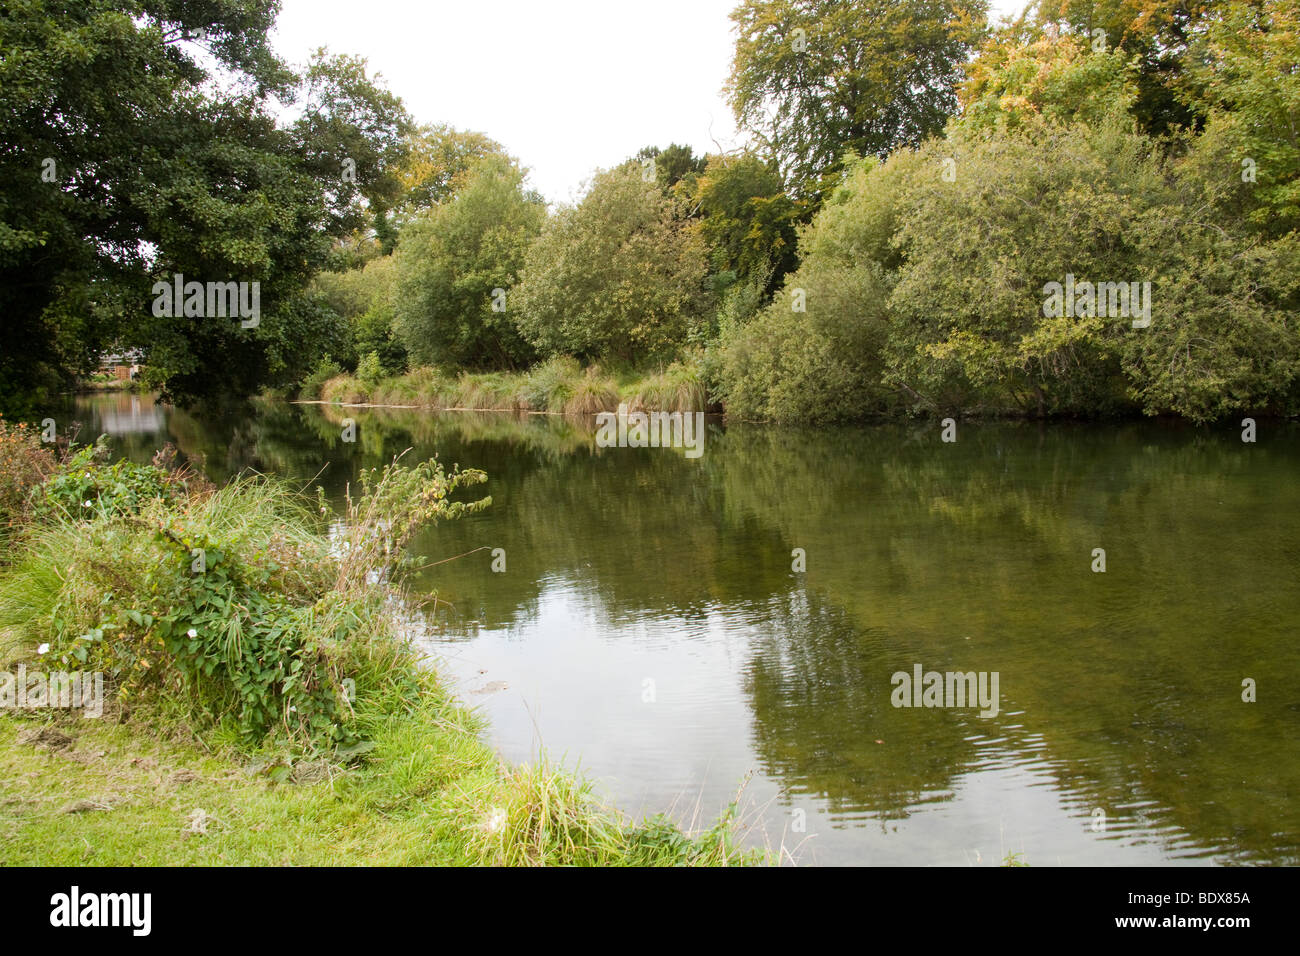 Avington trout fishery, Winchester, Hampshire, England. - Stock Image